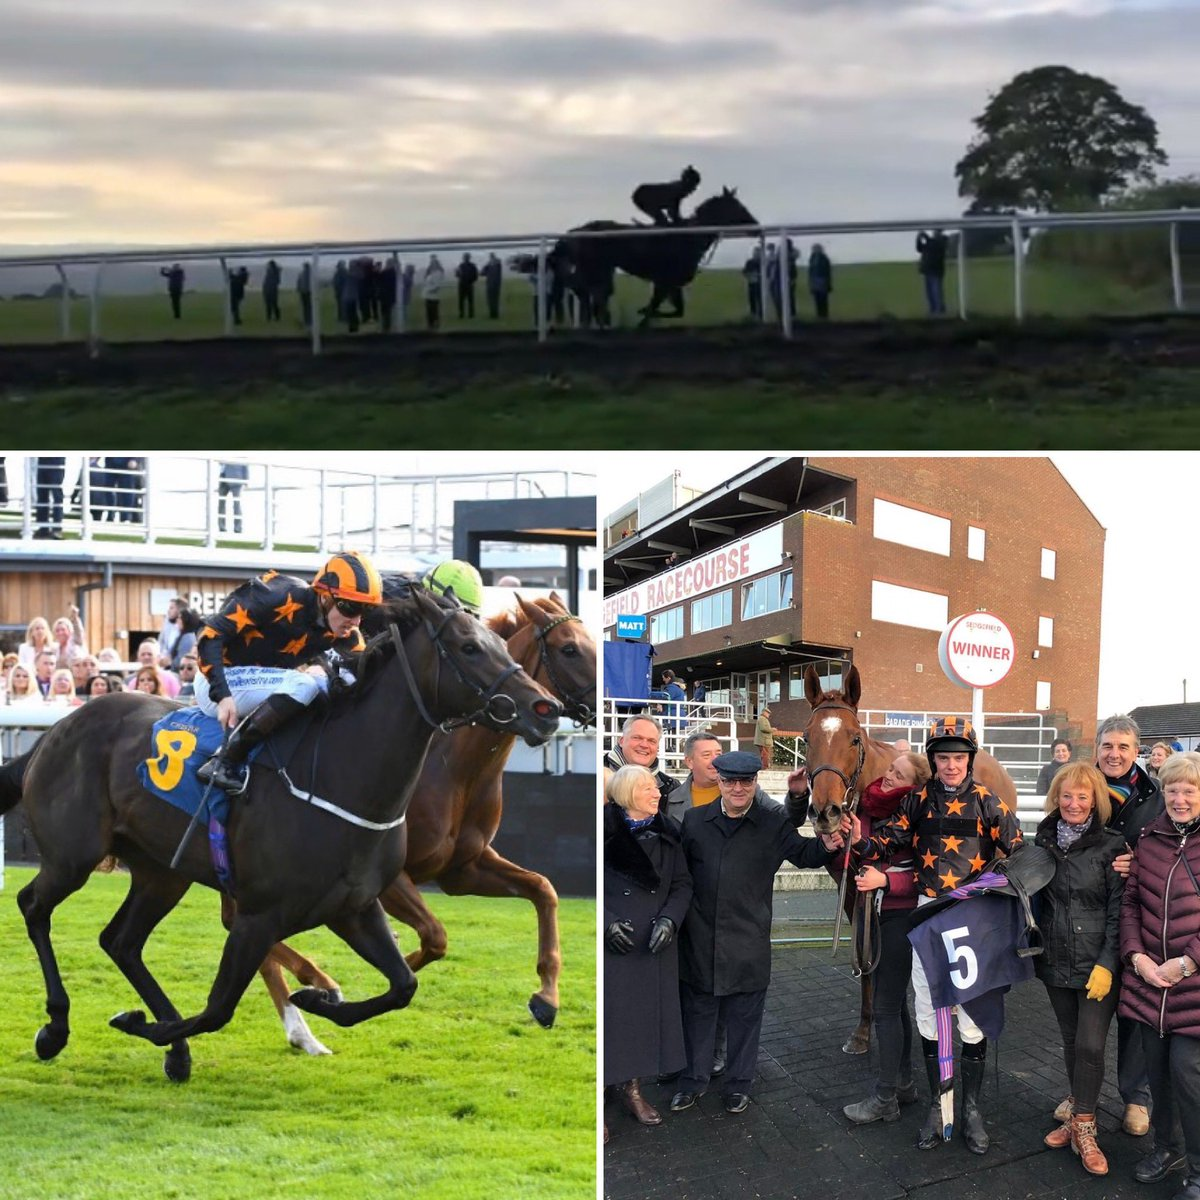 Mr Lauda declared to run @Beverley_Races and Anna Maria is declared to run @CatterickRaces on Tuesday.  We are busy with plenty of runners at the moment, there is no better time to join the club. Get in touch for full details. https://t.co/mVTVMpVEHt